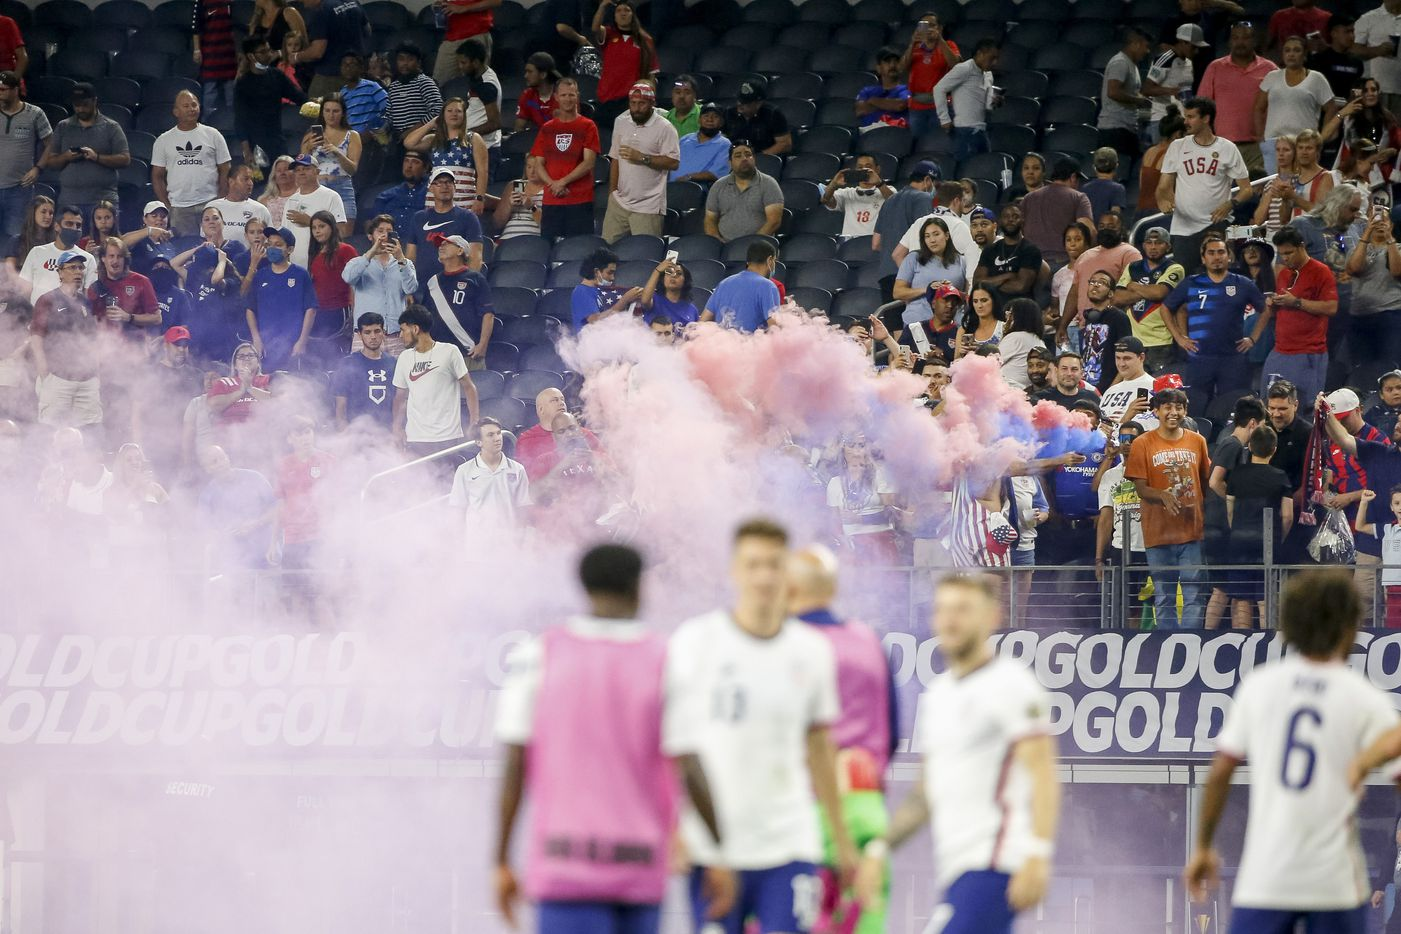 A smoke bomb fills the air after a CONCACAF Gold Cup quarterfinal soccer match between USA and Jamaica at AT&T Stadium on Sunday, July 25, 2021, in Arlington. (Elias Valverde II/The Dallas Morning News)